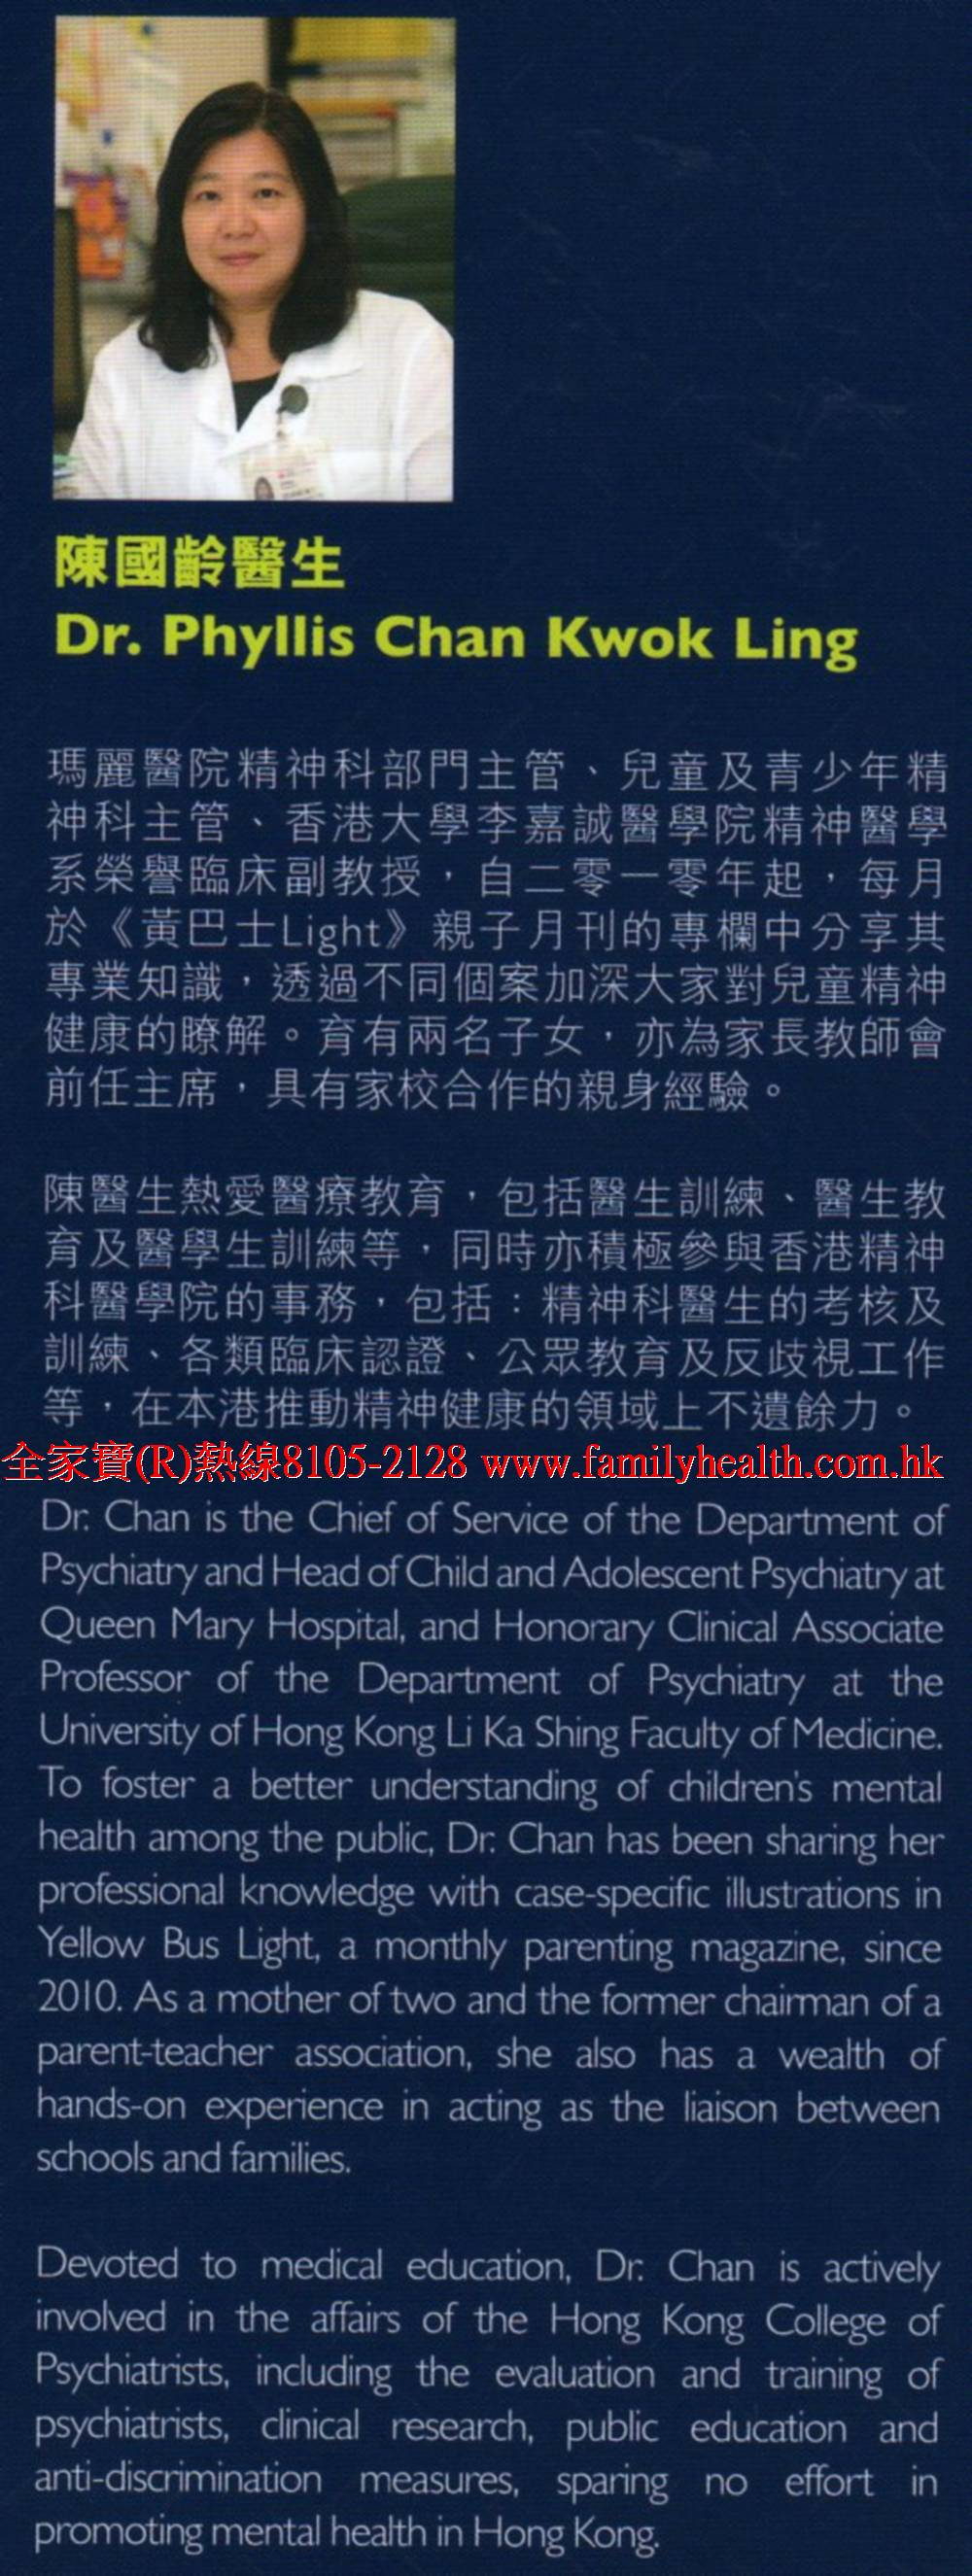 http://www.familyhealth.com.hk/files/full/964_2.jpg